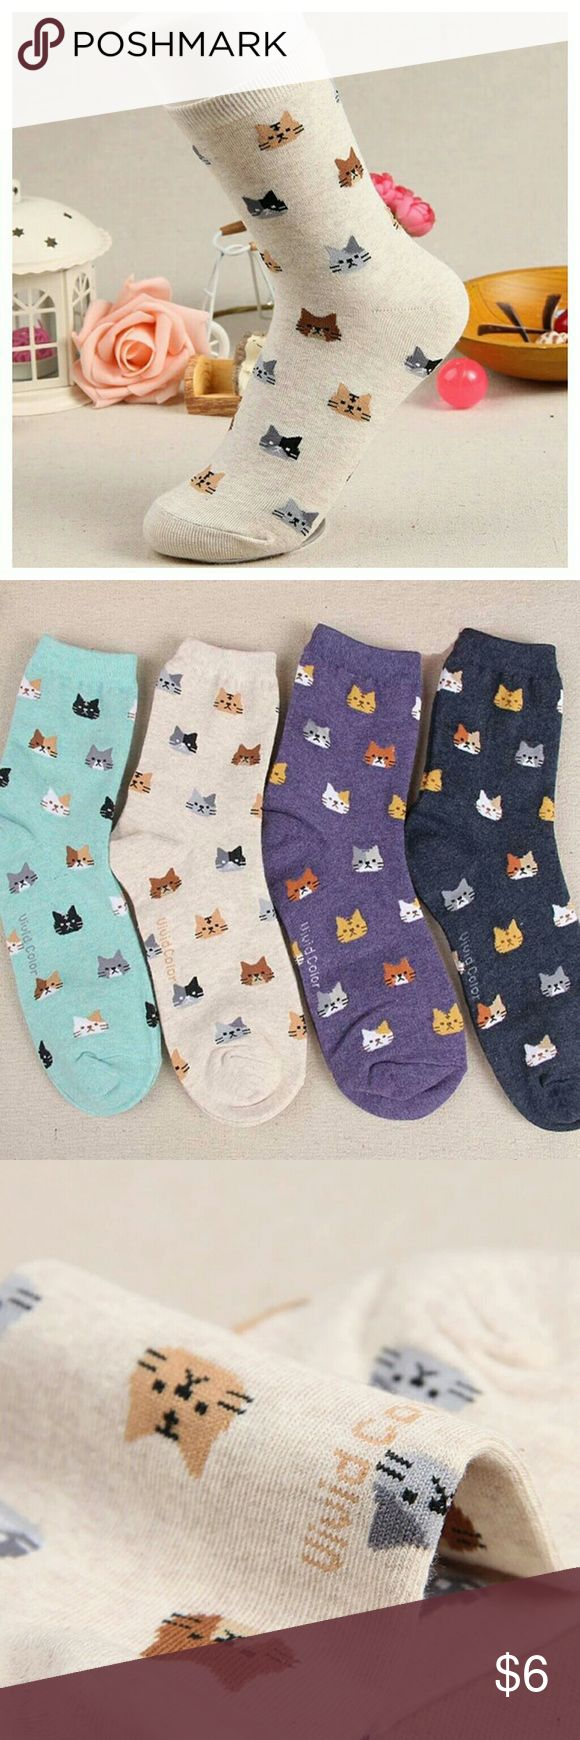 COMING SOON Autumn New Sock Animal Cartoon Cat Great for winter,  purrrrfect for cuddle weather <3 OS fits all,  100% Cotton 3 colors available (Cream,  Mint,  Navy)  Bundle for discount <3 Cat Life Accessories Hosiery & Socks